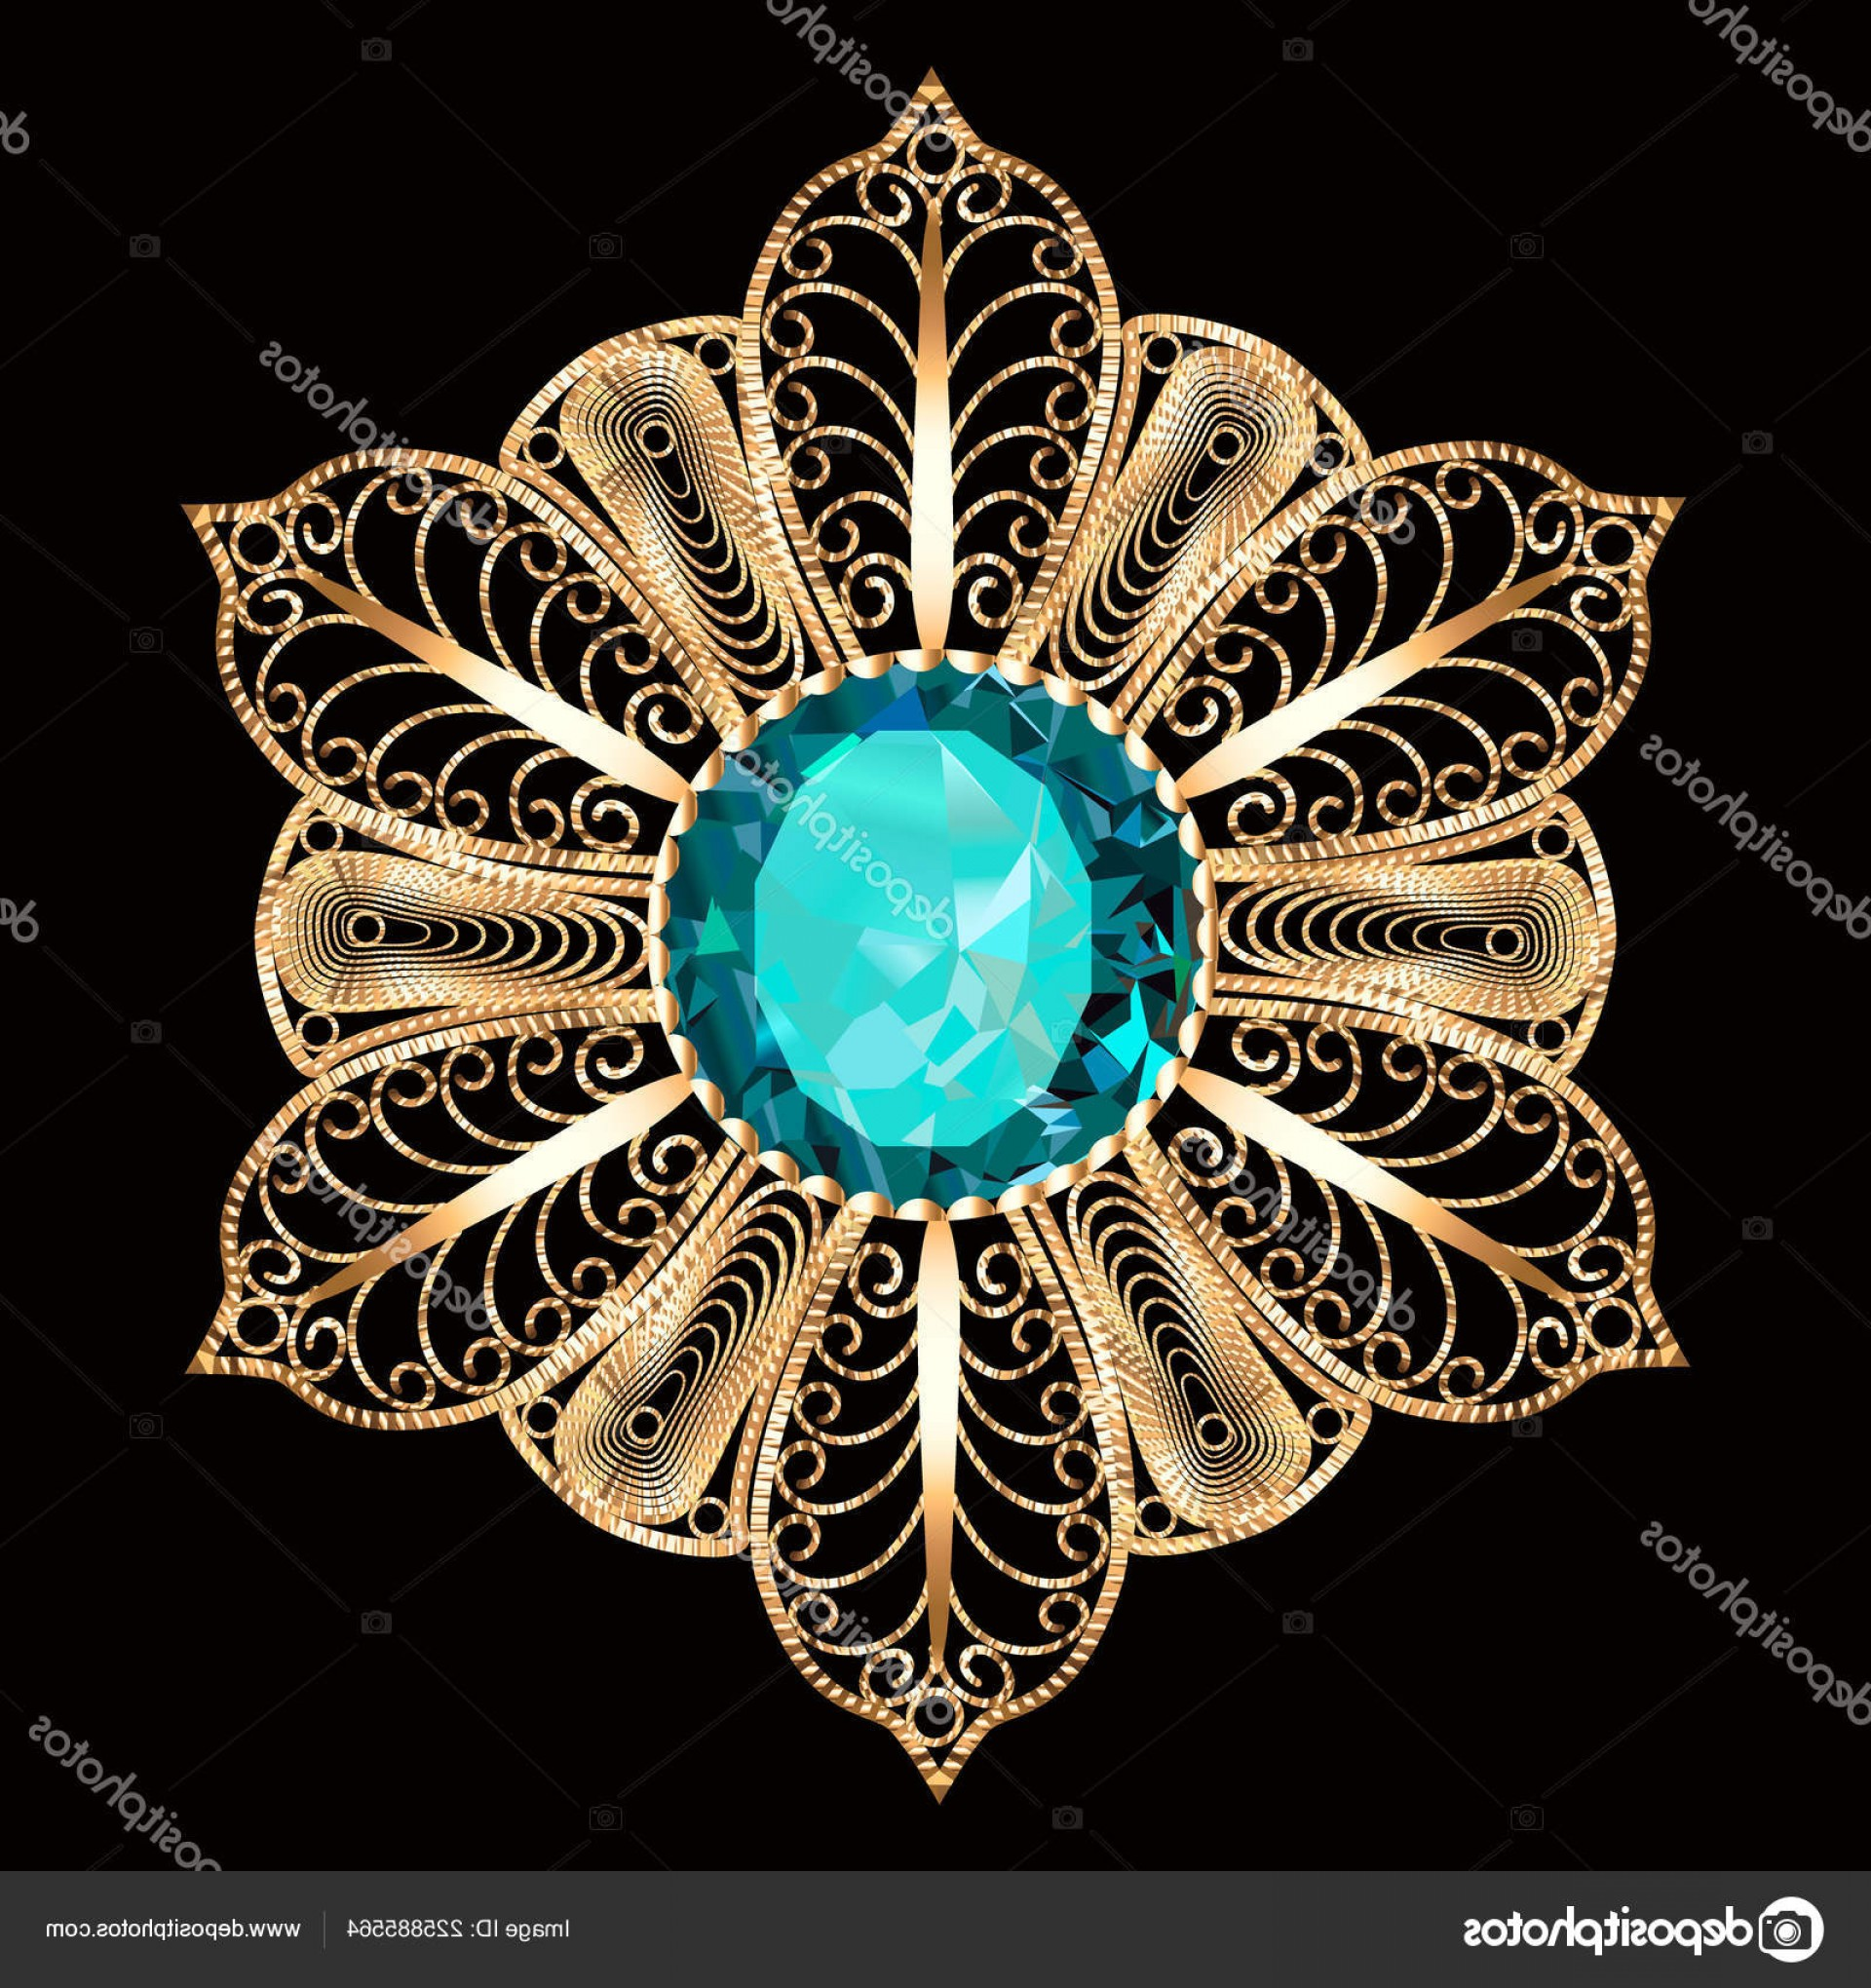 Aqua Victorian Medallions Vectors: Stock Illustration Illustration Brooch Pendant Precious Stones